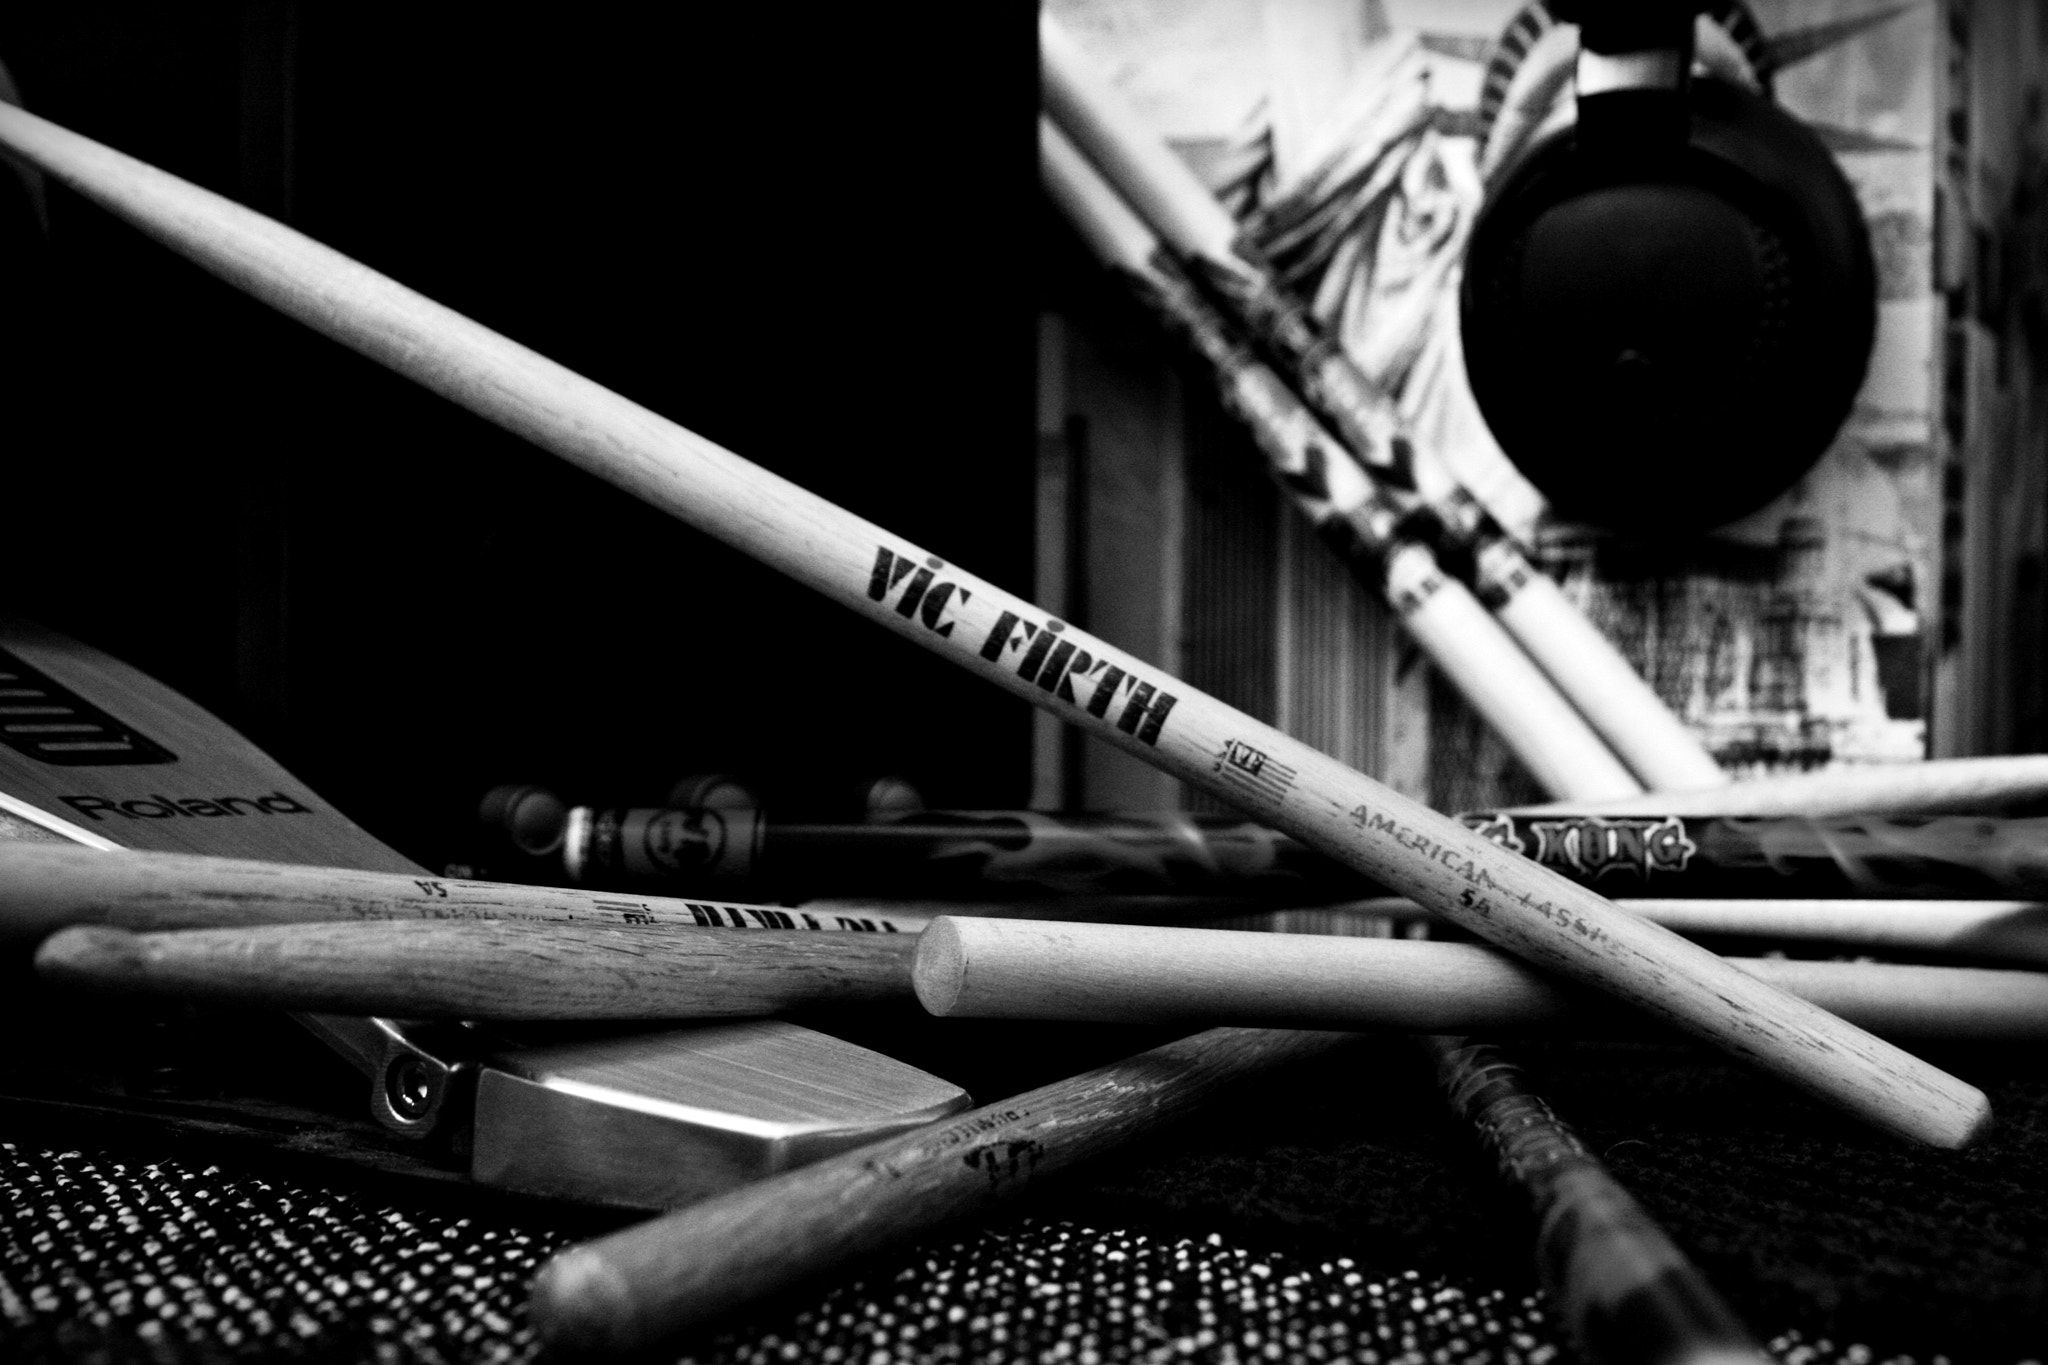 Photograph Drums with Roland and Vic Firth. by Thomas Rousseau on 500px